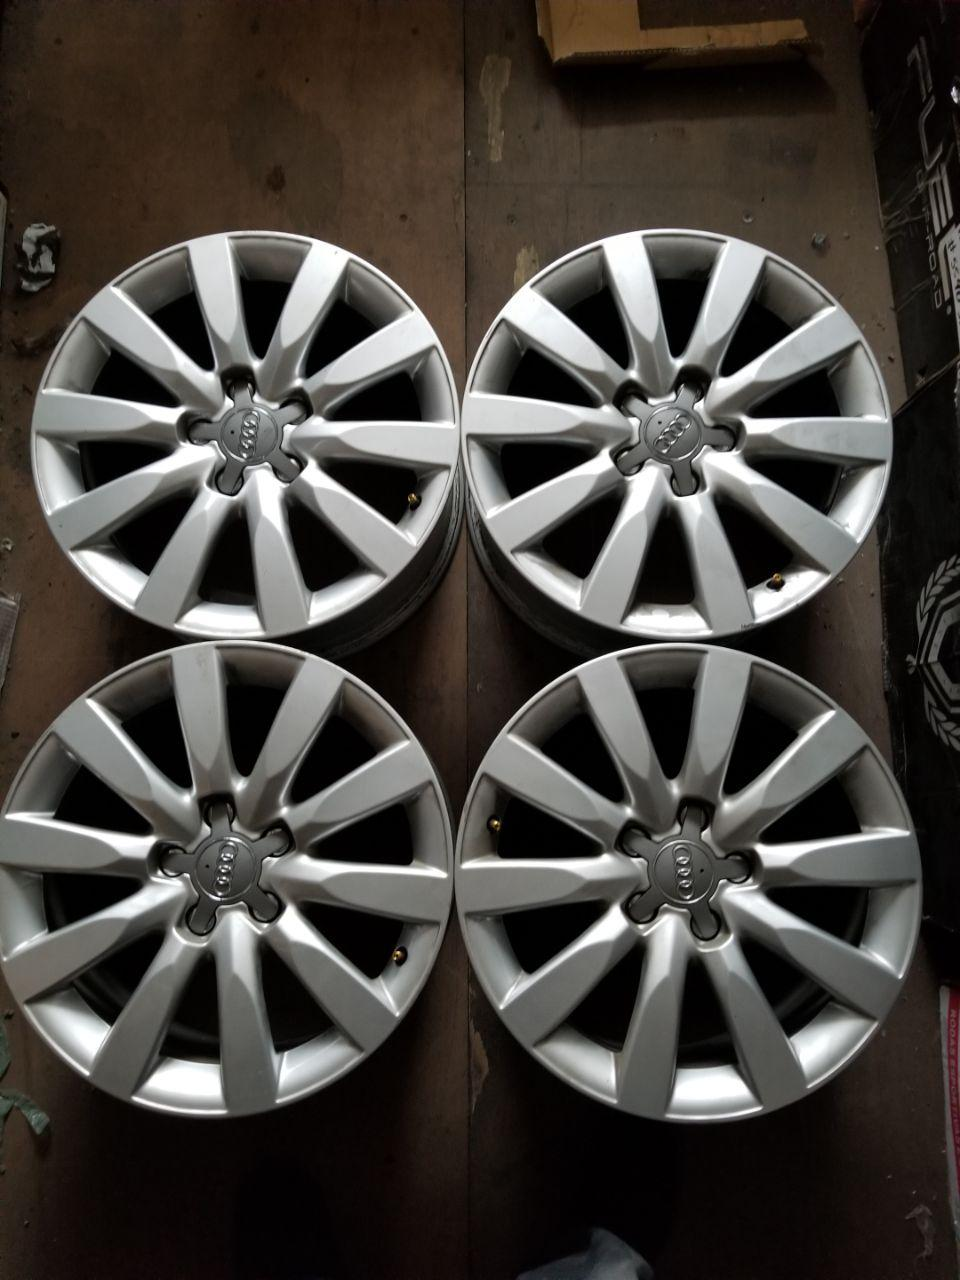 - OEM WHEELS - 2009-2012 AUDI A4 17X8 10 SPOKE Hollander # 58837 /  USED